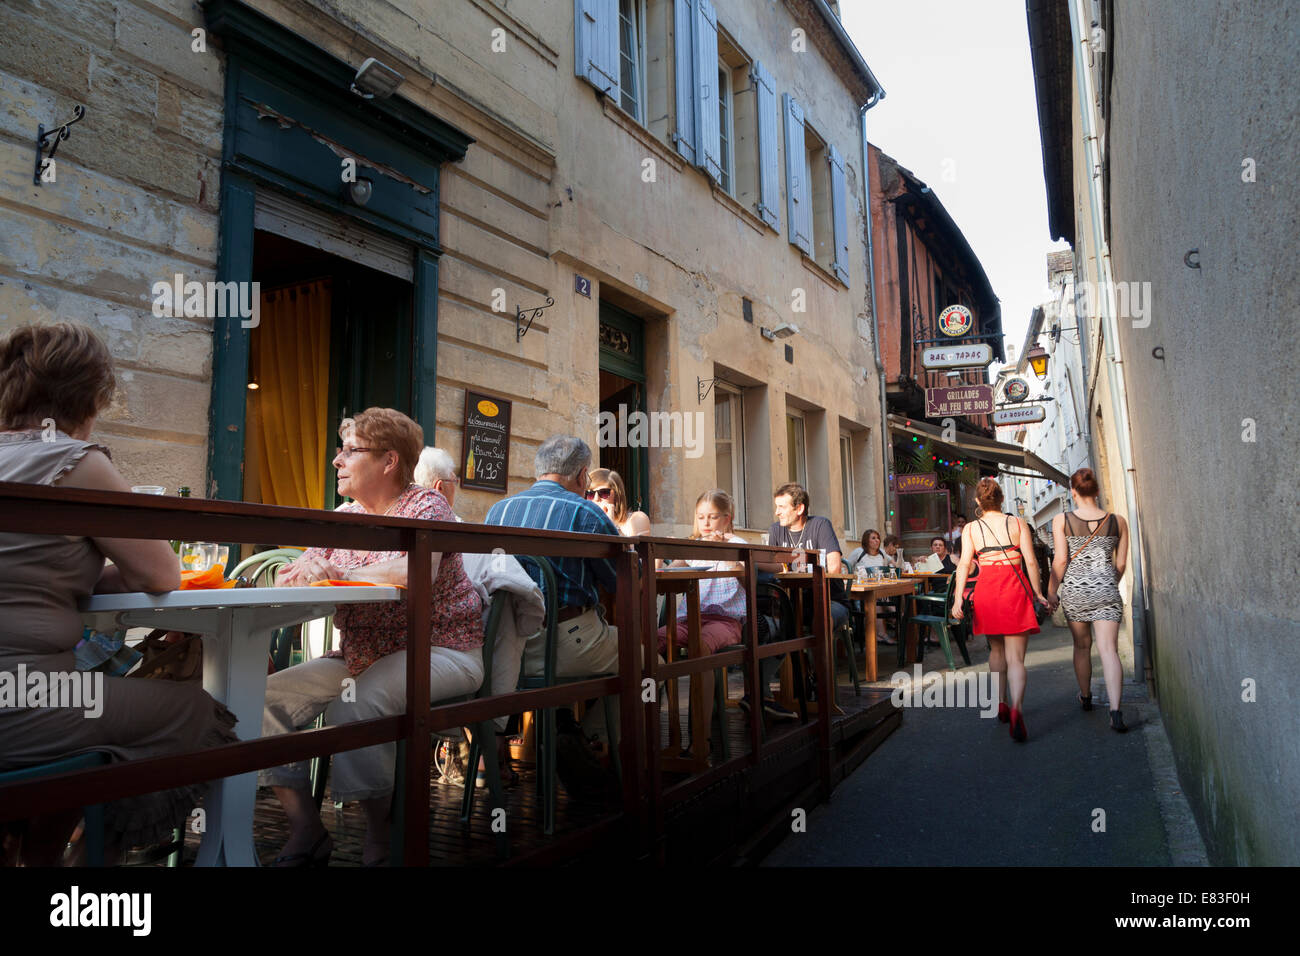 Small eating area outside restaurant in narrow French alley. - Stock Image